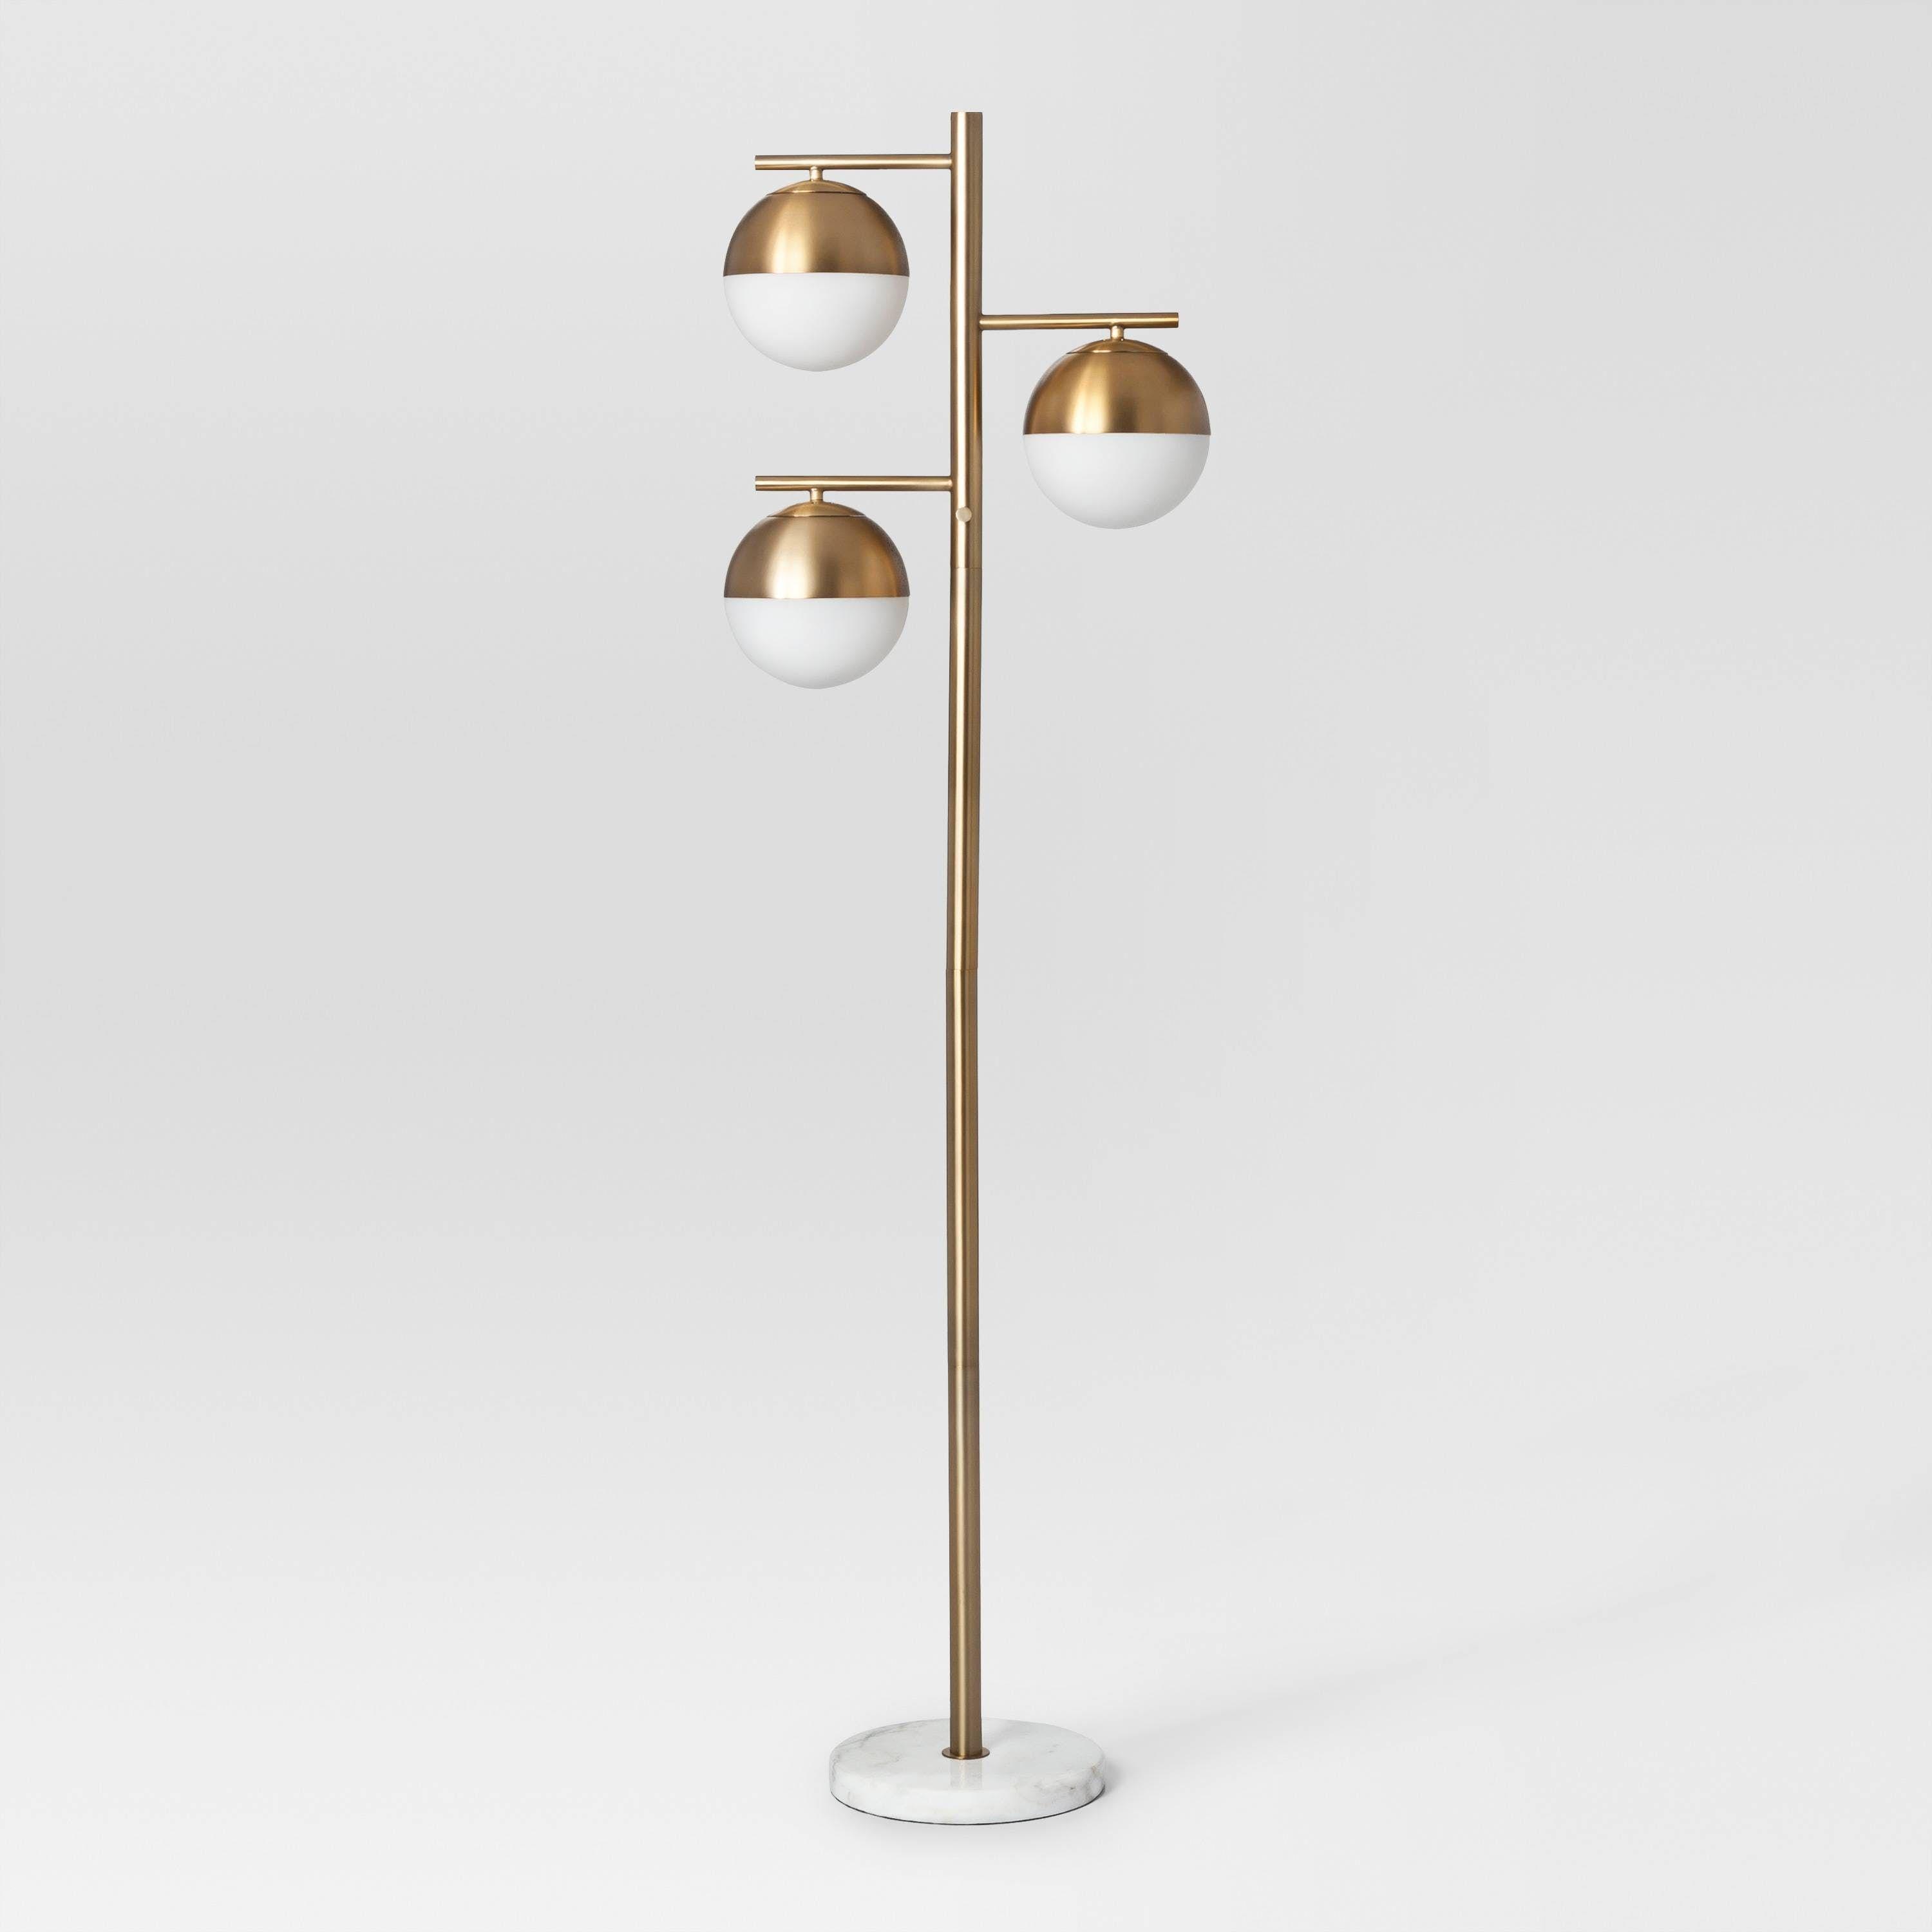 what loving from target new home line carl sagan room accent spotlight table lamp west elm geneva glass floor triple globe round oak dining plastic outdoor usb pendant deep